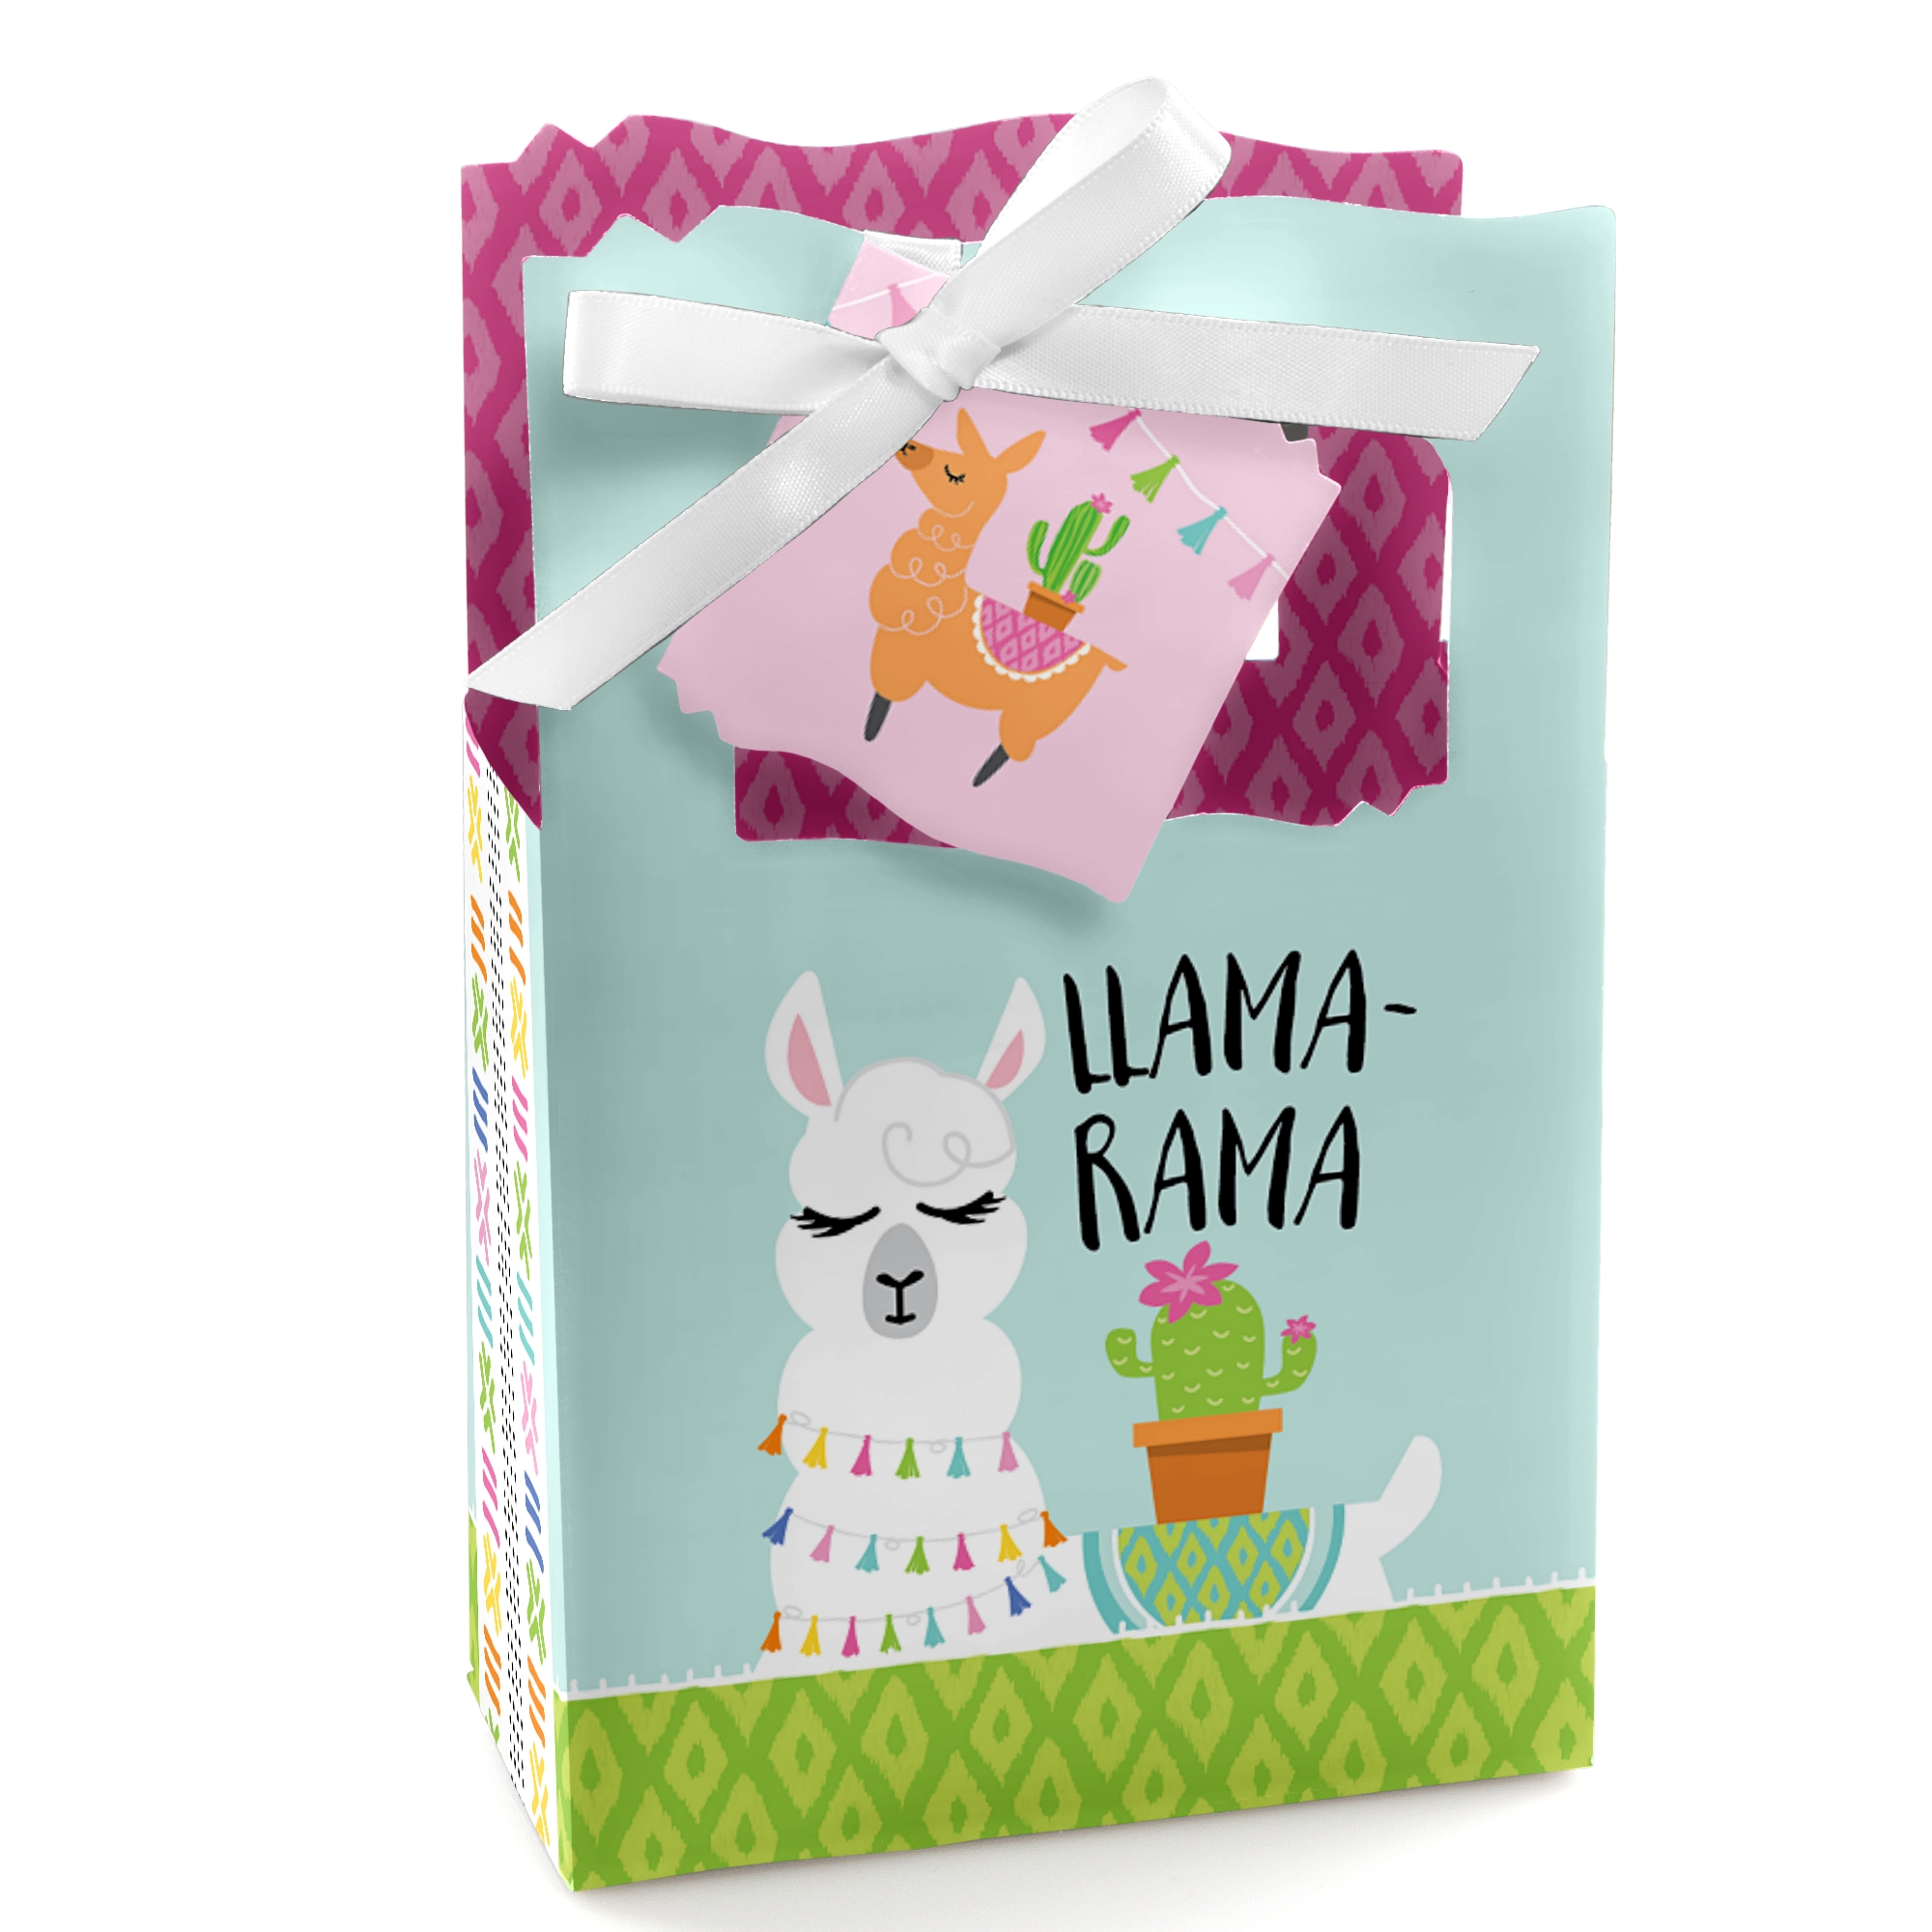 Whole Llama Fun - Llama Fiesta Baby Shower or Birthday Party Favor Boxes - Set of 12